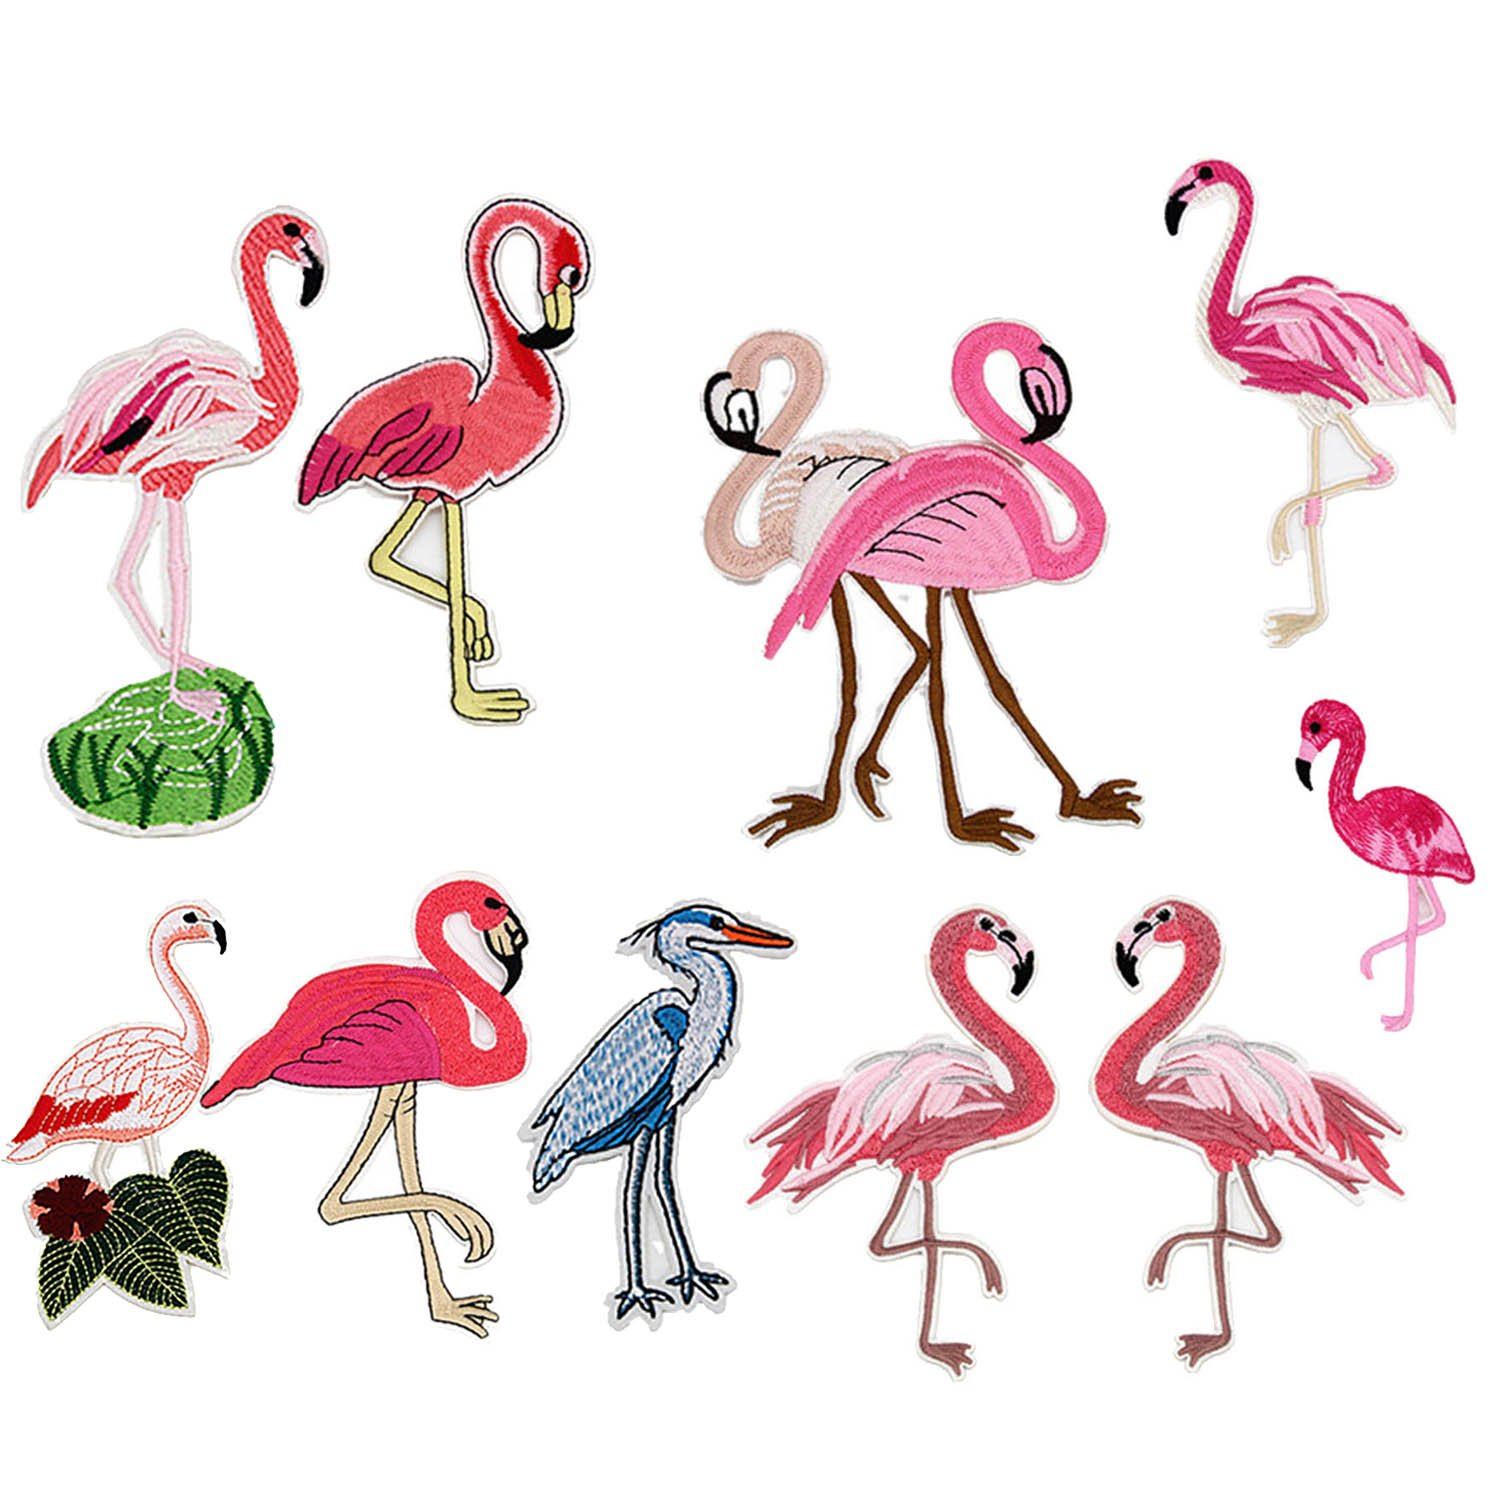 10 PCS Lifelike Flamingos Pattern DIY Clothes Patches Stickers Embroidered Sew Patches 10 Styles Clothes Accessories for T-shirt Jeans Clothing Bags Gosear